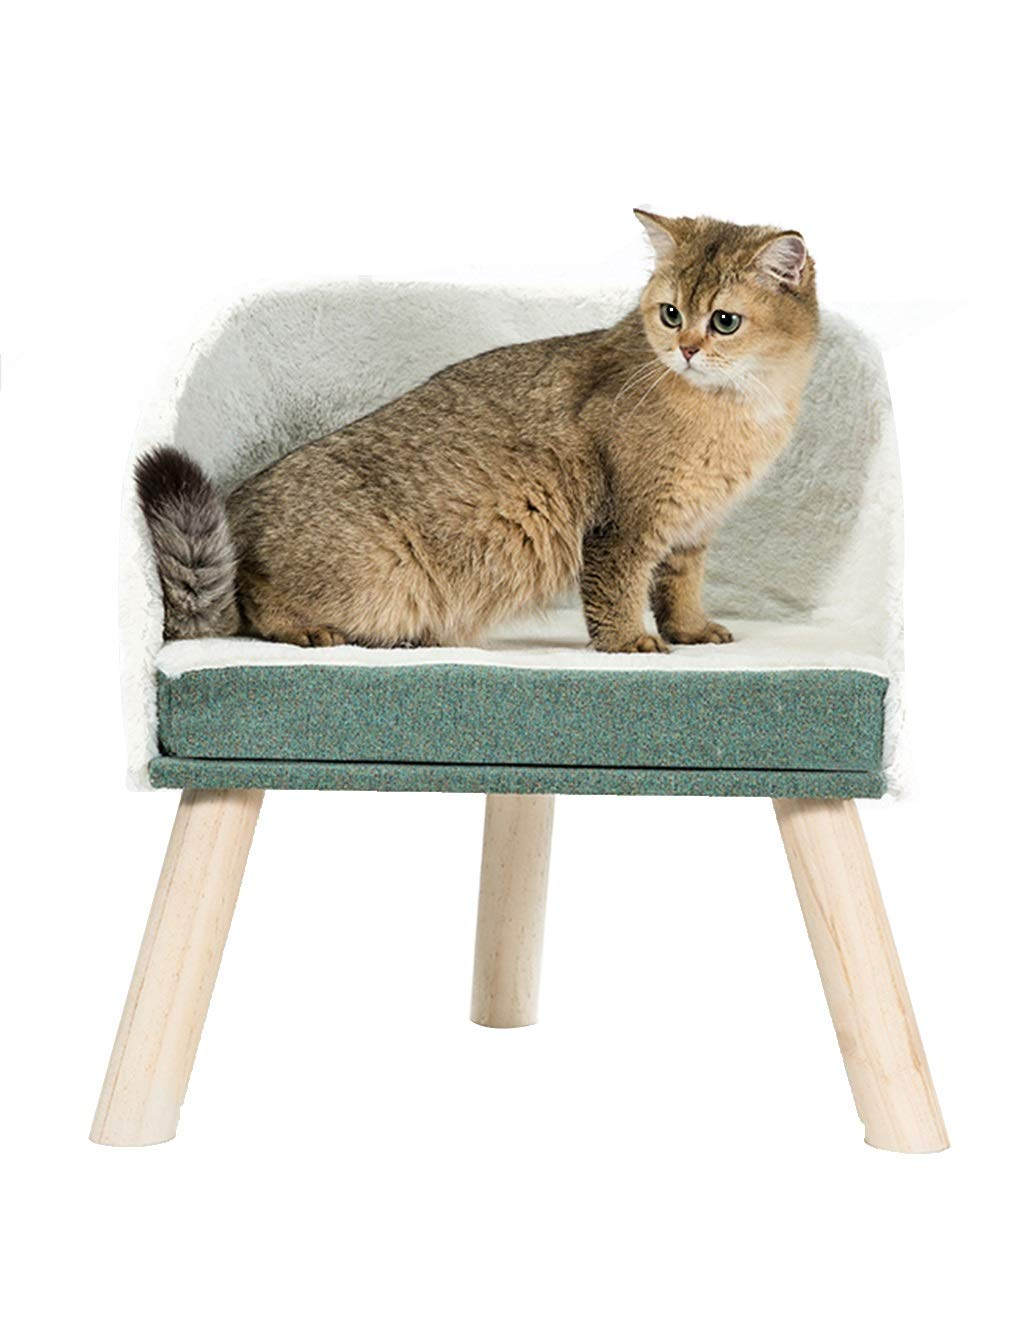 B Cat Tree House Climbing Ladder Stable Construction & Soft Fur, Cat Tower Furniture for Kittens, Cats and Pets, 3 Style (color   B)